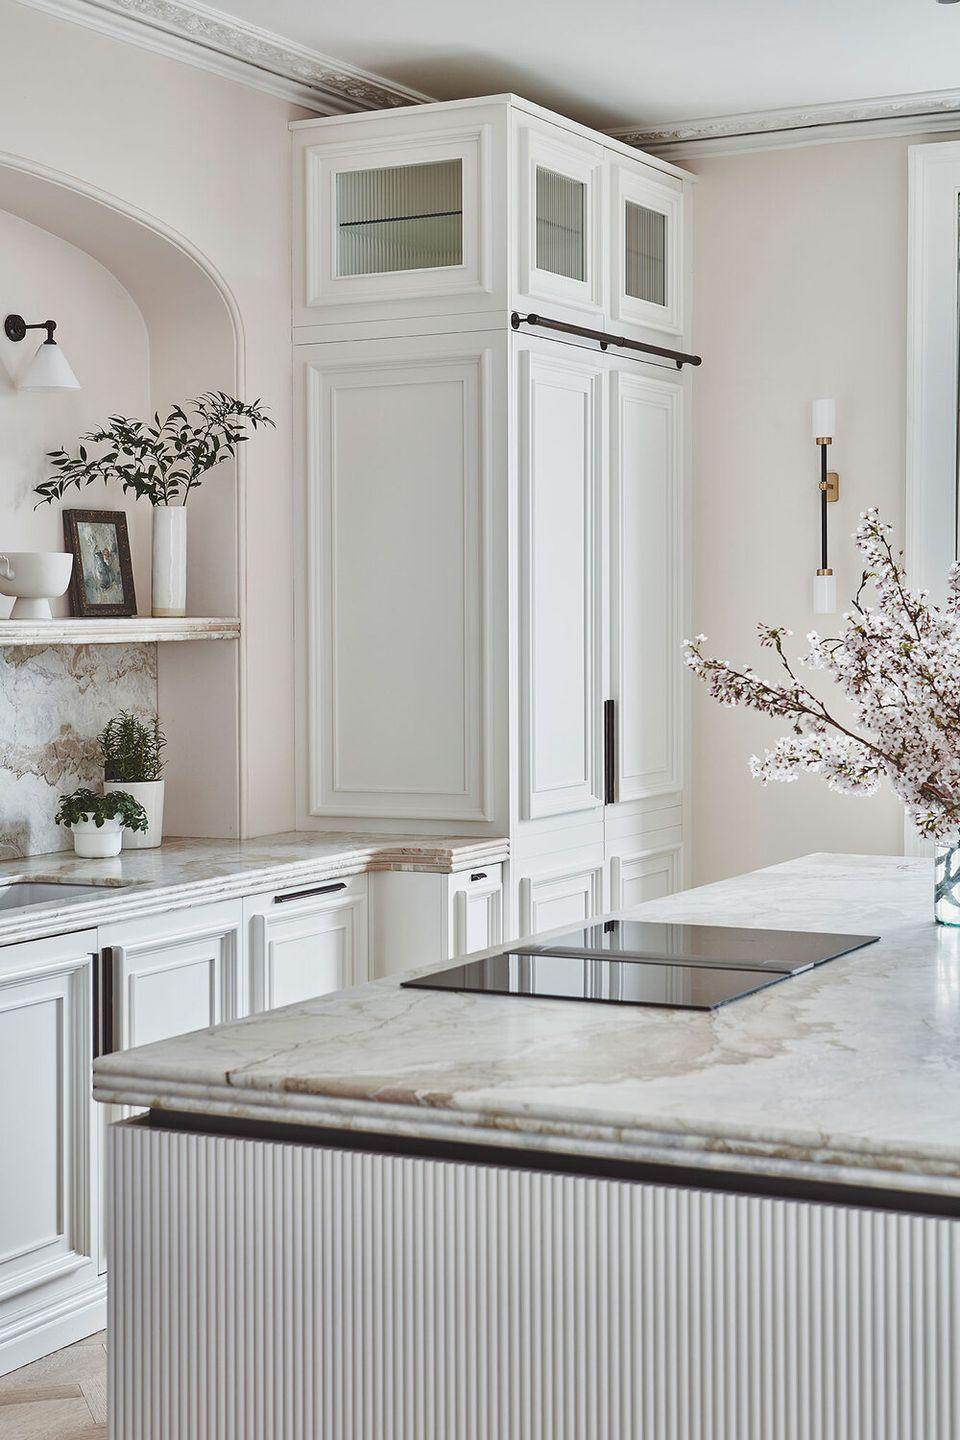 """<p>This kitchen uses plenty of surface detailing – ridged fronts to the kitchen island, decorative moulding, and reeded glass – to add interest and depth to pure white cabinetry. A clever device to prevent your white cabinets from appearing too slick or clinical.</p><p>Pictured: <a href=""""https://www.blakeslondon.com/bathtownhouse"""" rel=""""nofollow noopener"""" target=""""_blank"""" data-ylk=""""slk:Kitchen by Blakes London"""" class=""""link rapid-noclick-resp"""">Kitchen by Blakes London</a></p>"""